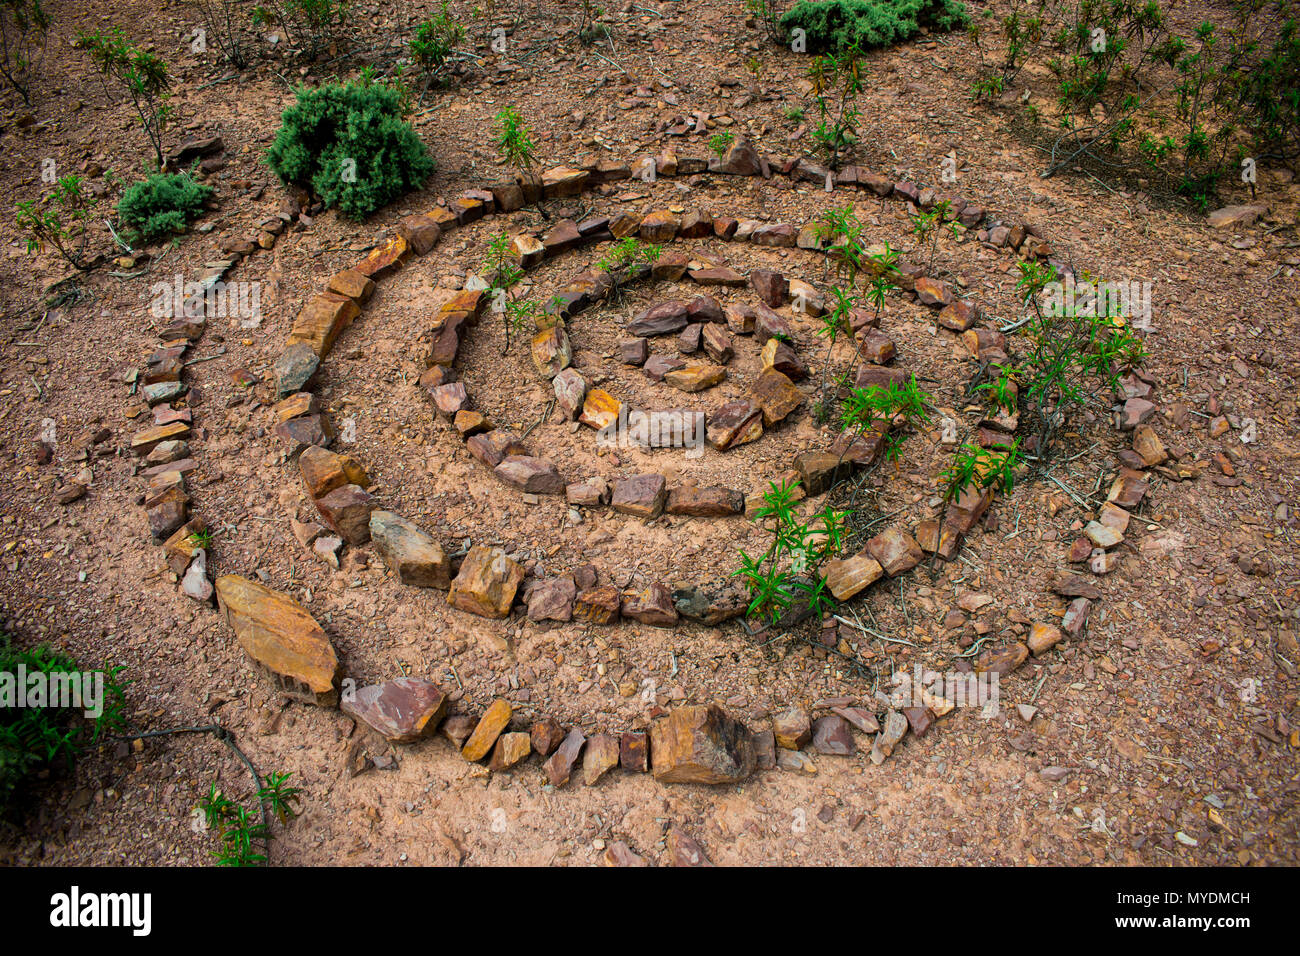 Stone spiral made up of lots of individual rocks on a dry stony floor with green plants growing up through the spiral of stones. - Stock Image